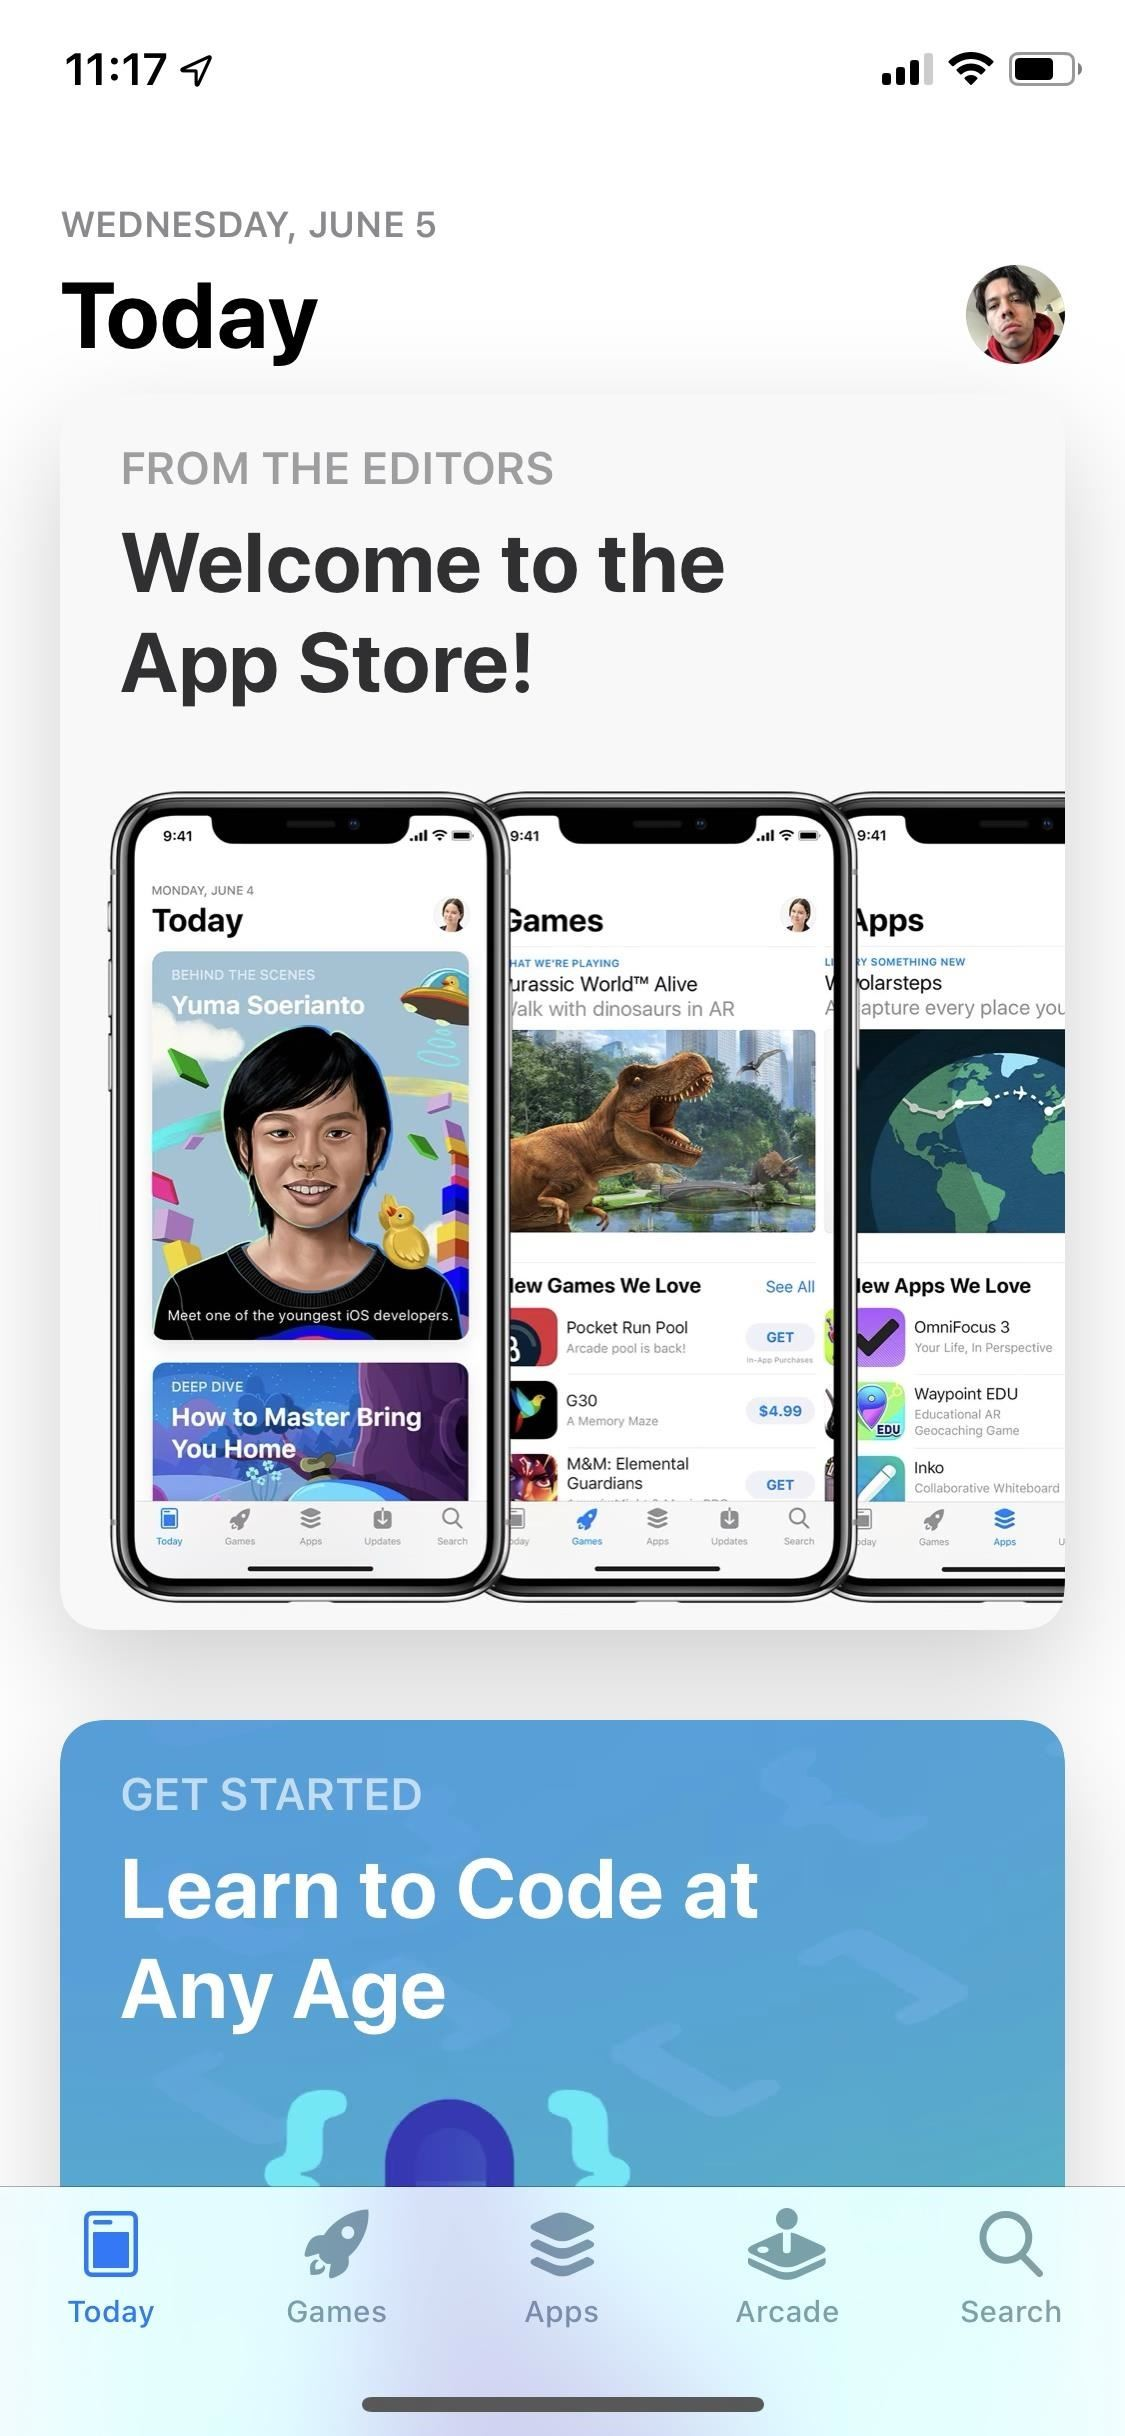 How to Rearrange & Remove Apps from Your iPhone's Home Screen in iOS 13